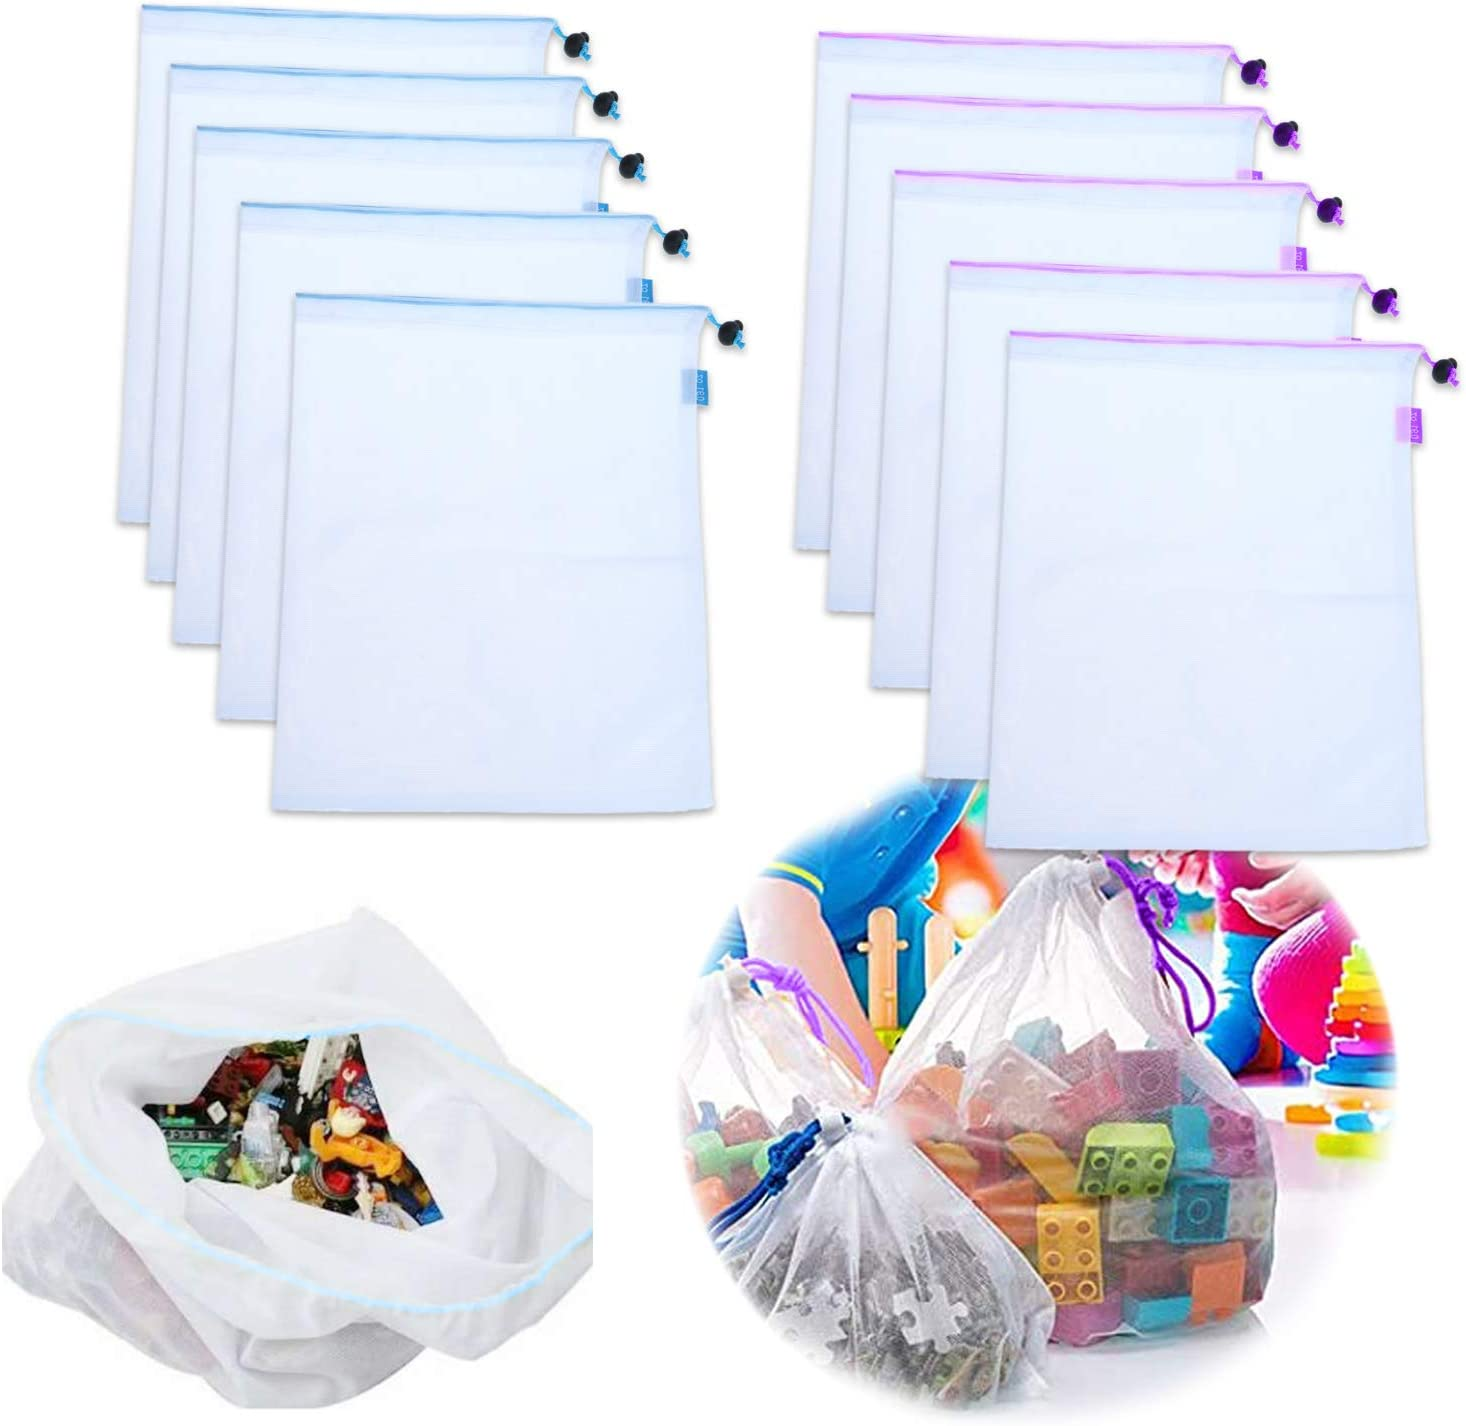 10 Pack Toy Storage Organization Mesh Bags,Can be Washed and Reusable, Food Safety Mesh Bag, with Drawstring, Suitable for Fruit, Vegetable, Toys classification, Travel Storage 12×17in (large)